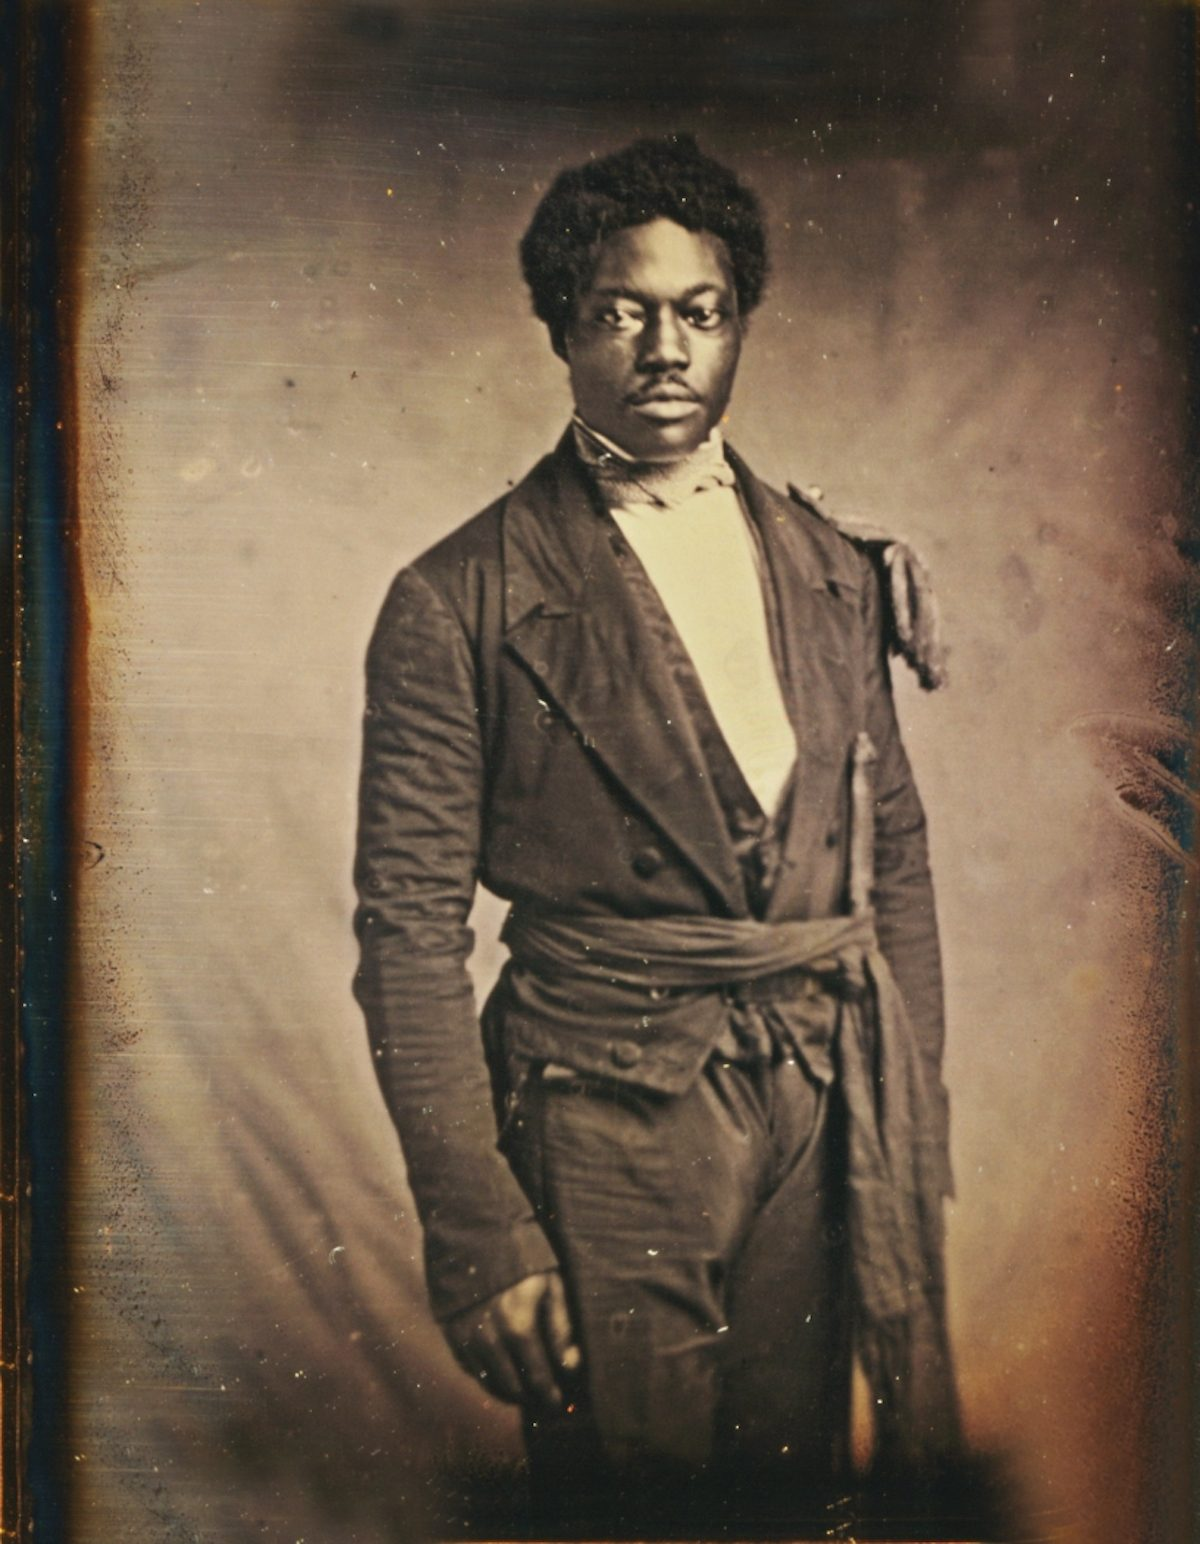 Chancy Brown, Sergeant at Arms of the Liberian Senate, by Augustus Washington